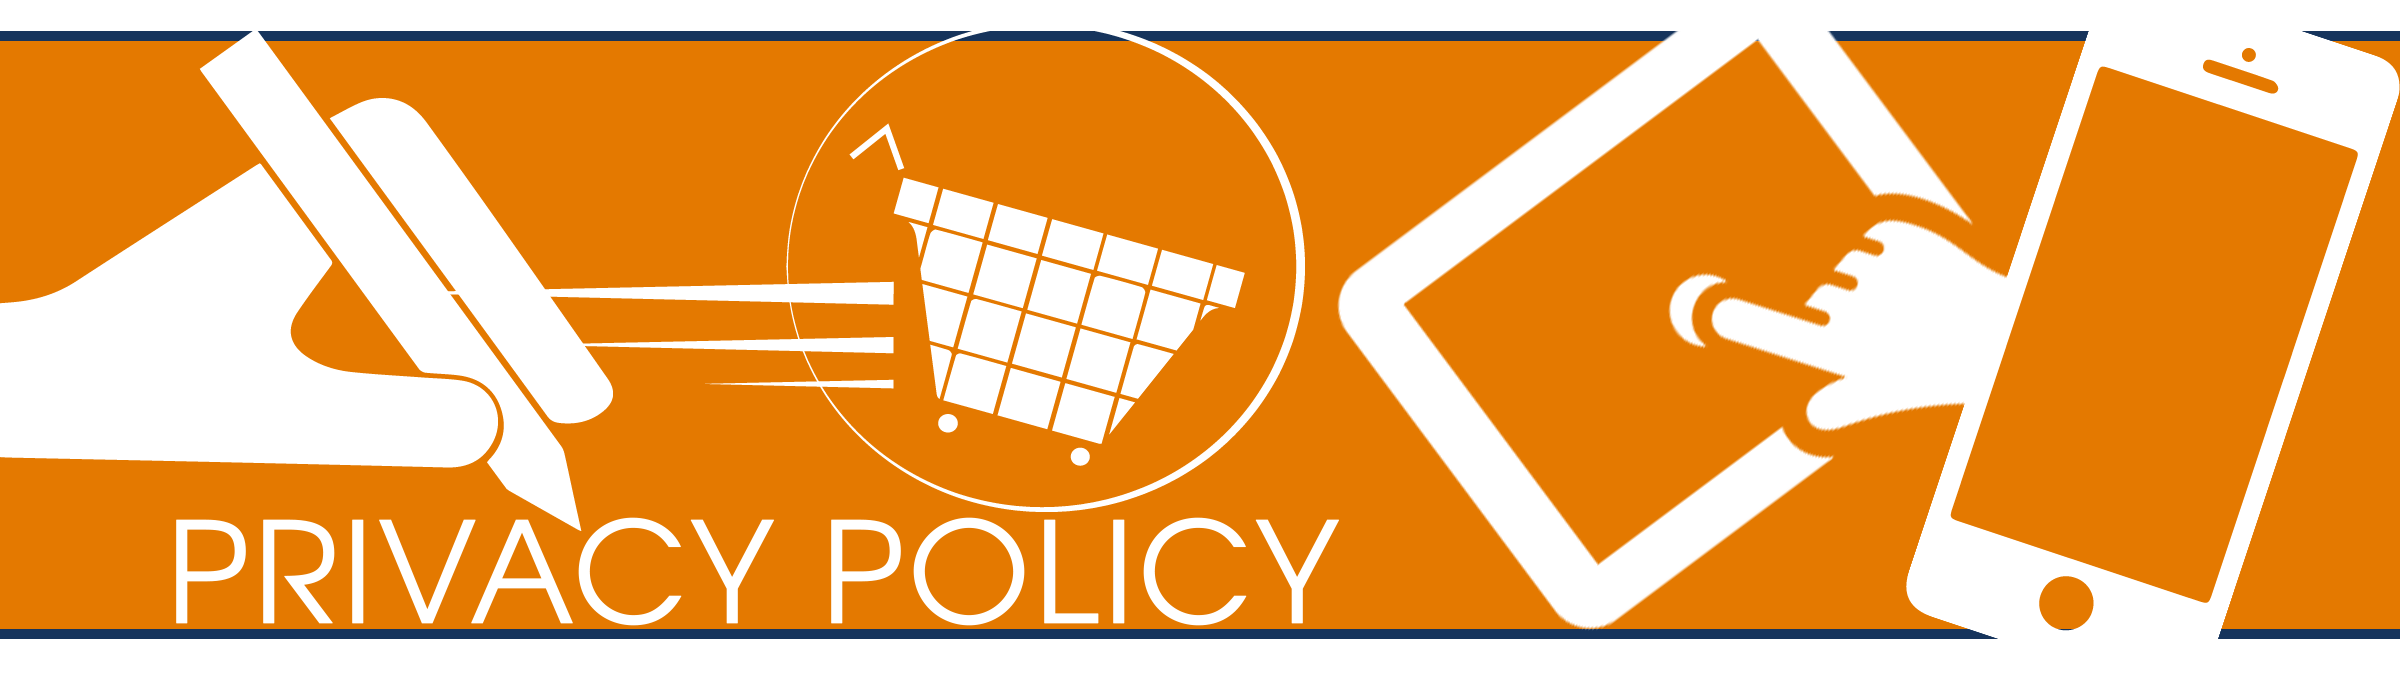 Privacy Policy >> The European Approach to Privacy Policies